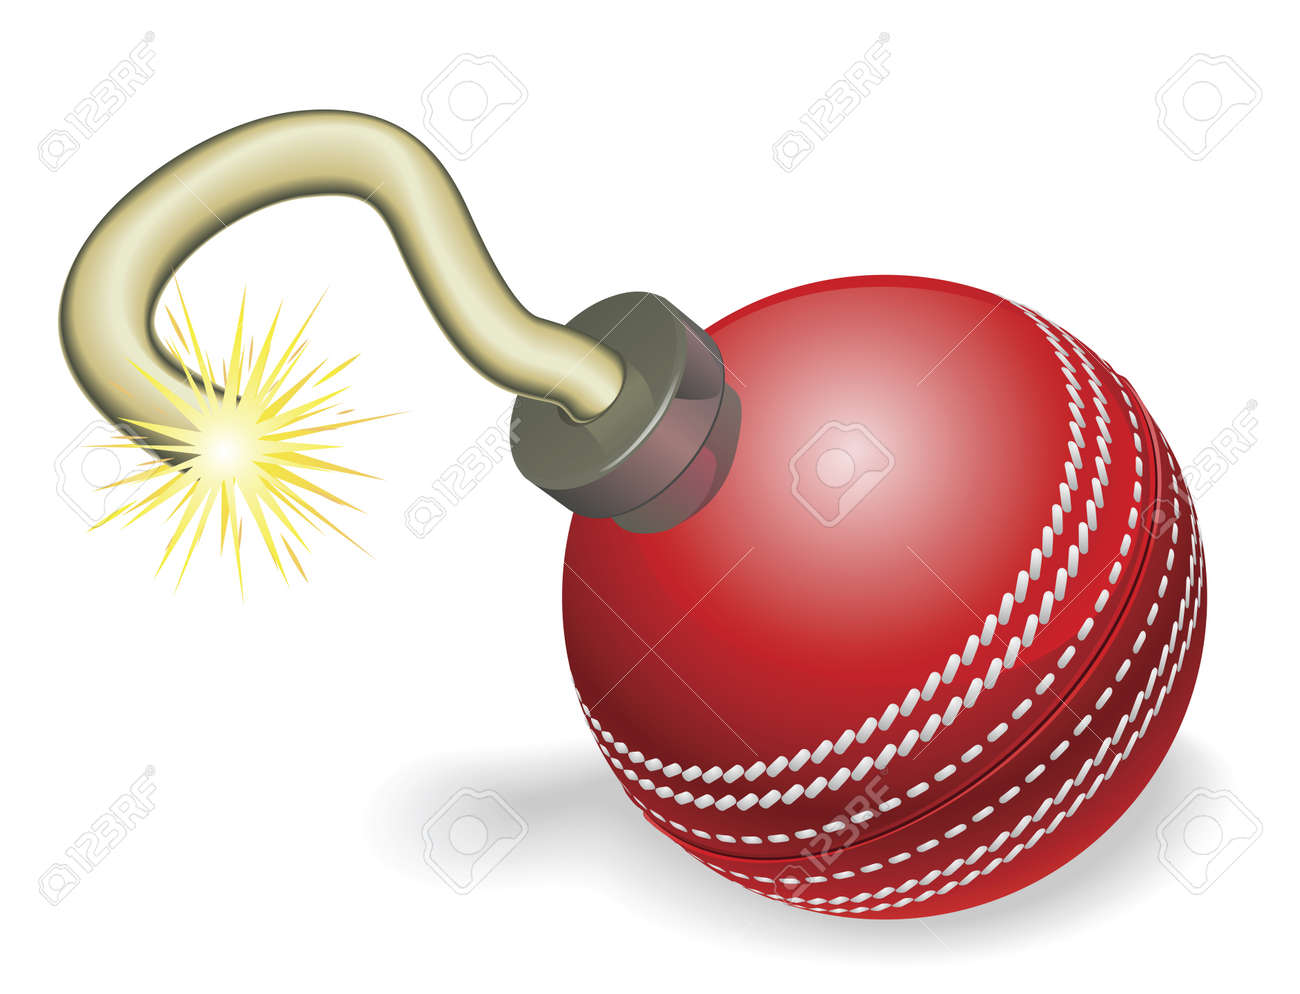 Retro cartoon cricket ball cherry bomb with lit fuse burning down. Concept for countdown to big cricketing event or crisis. Stock Vector - 9851541